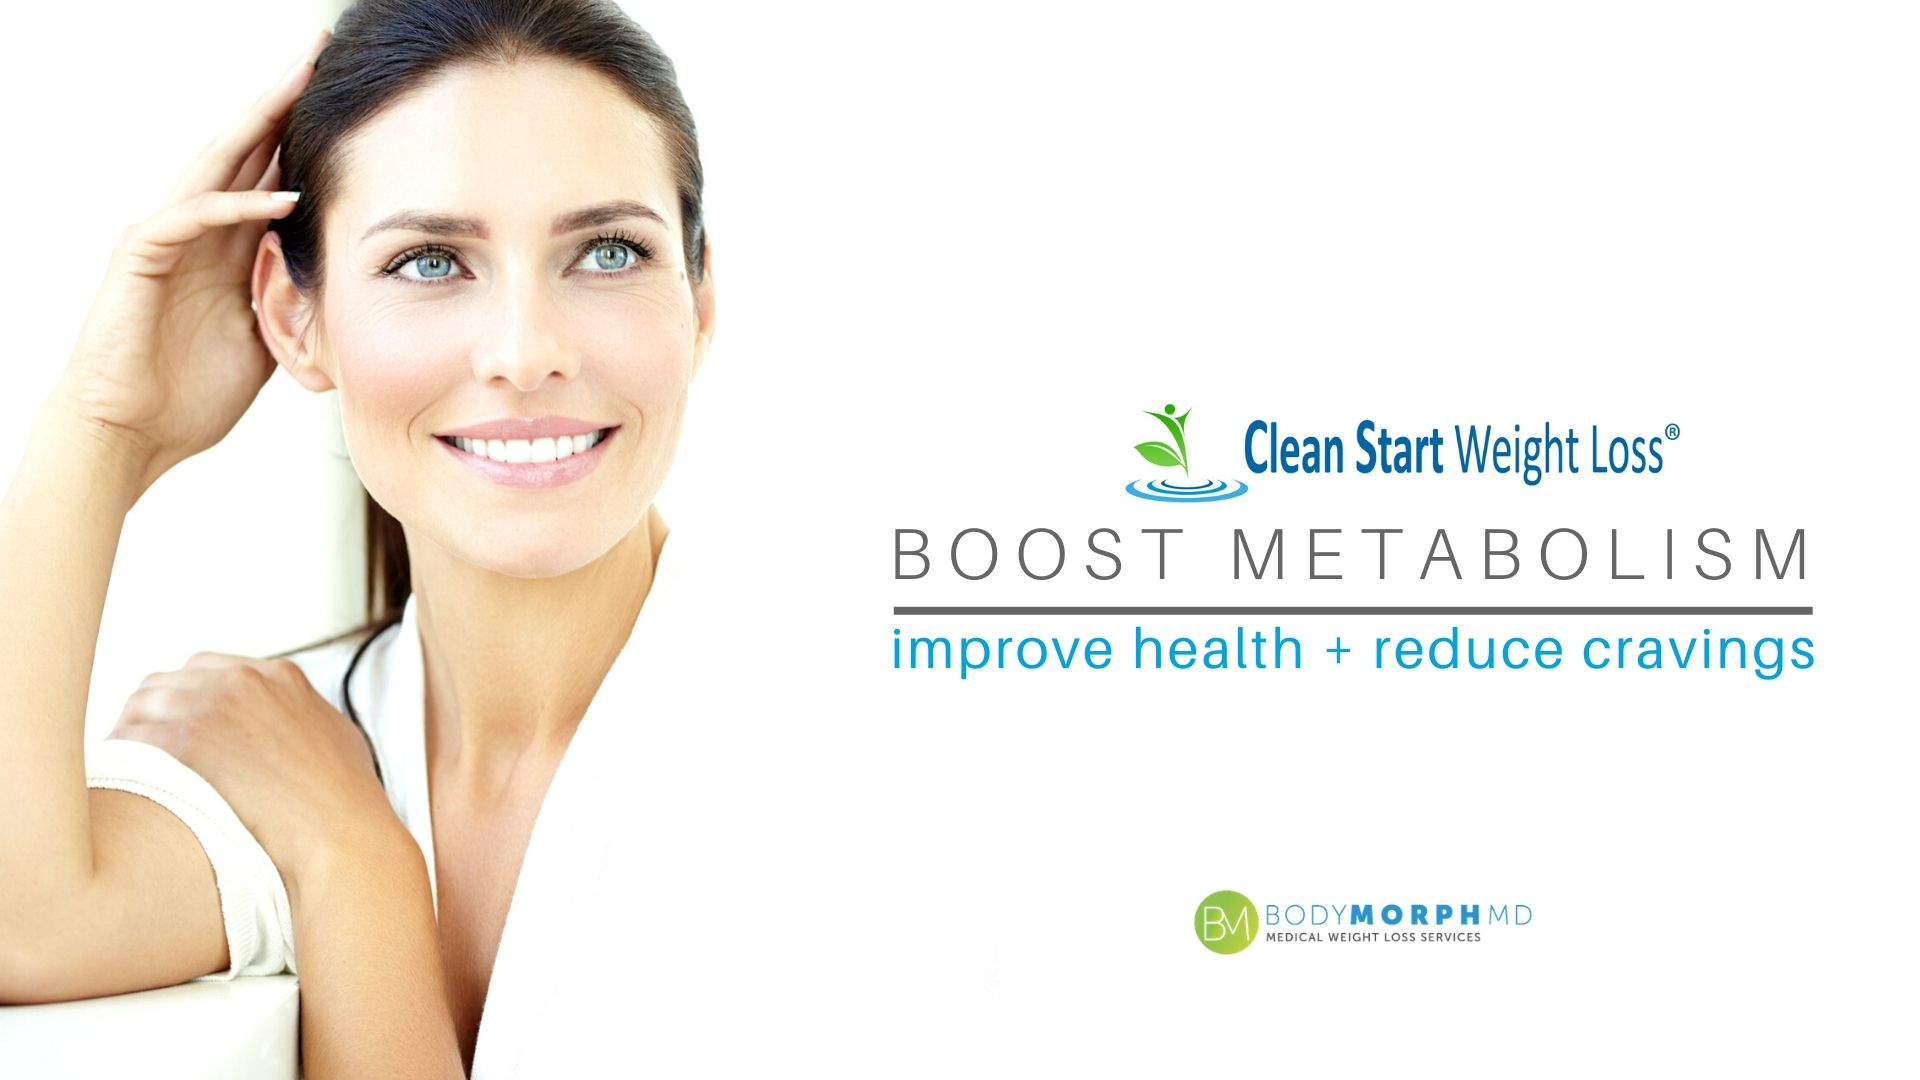 Clean Start Weight Loss Program Body Morph MD in Yonkers, NY.